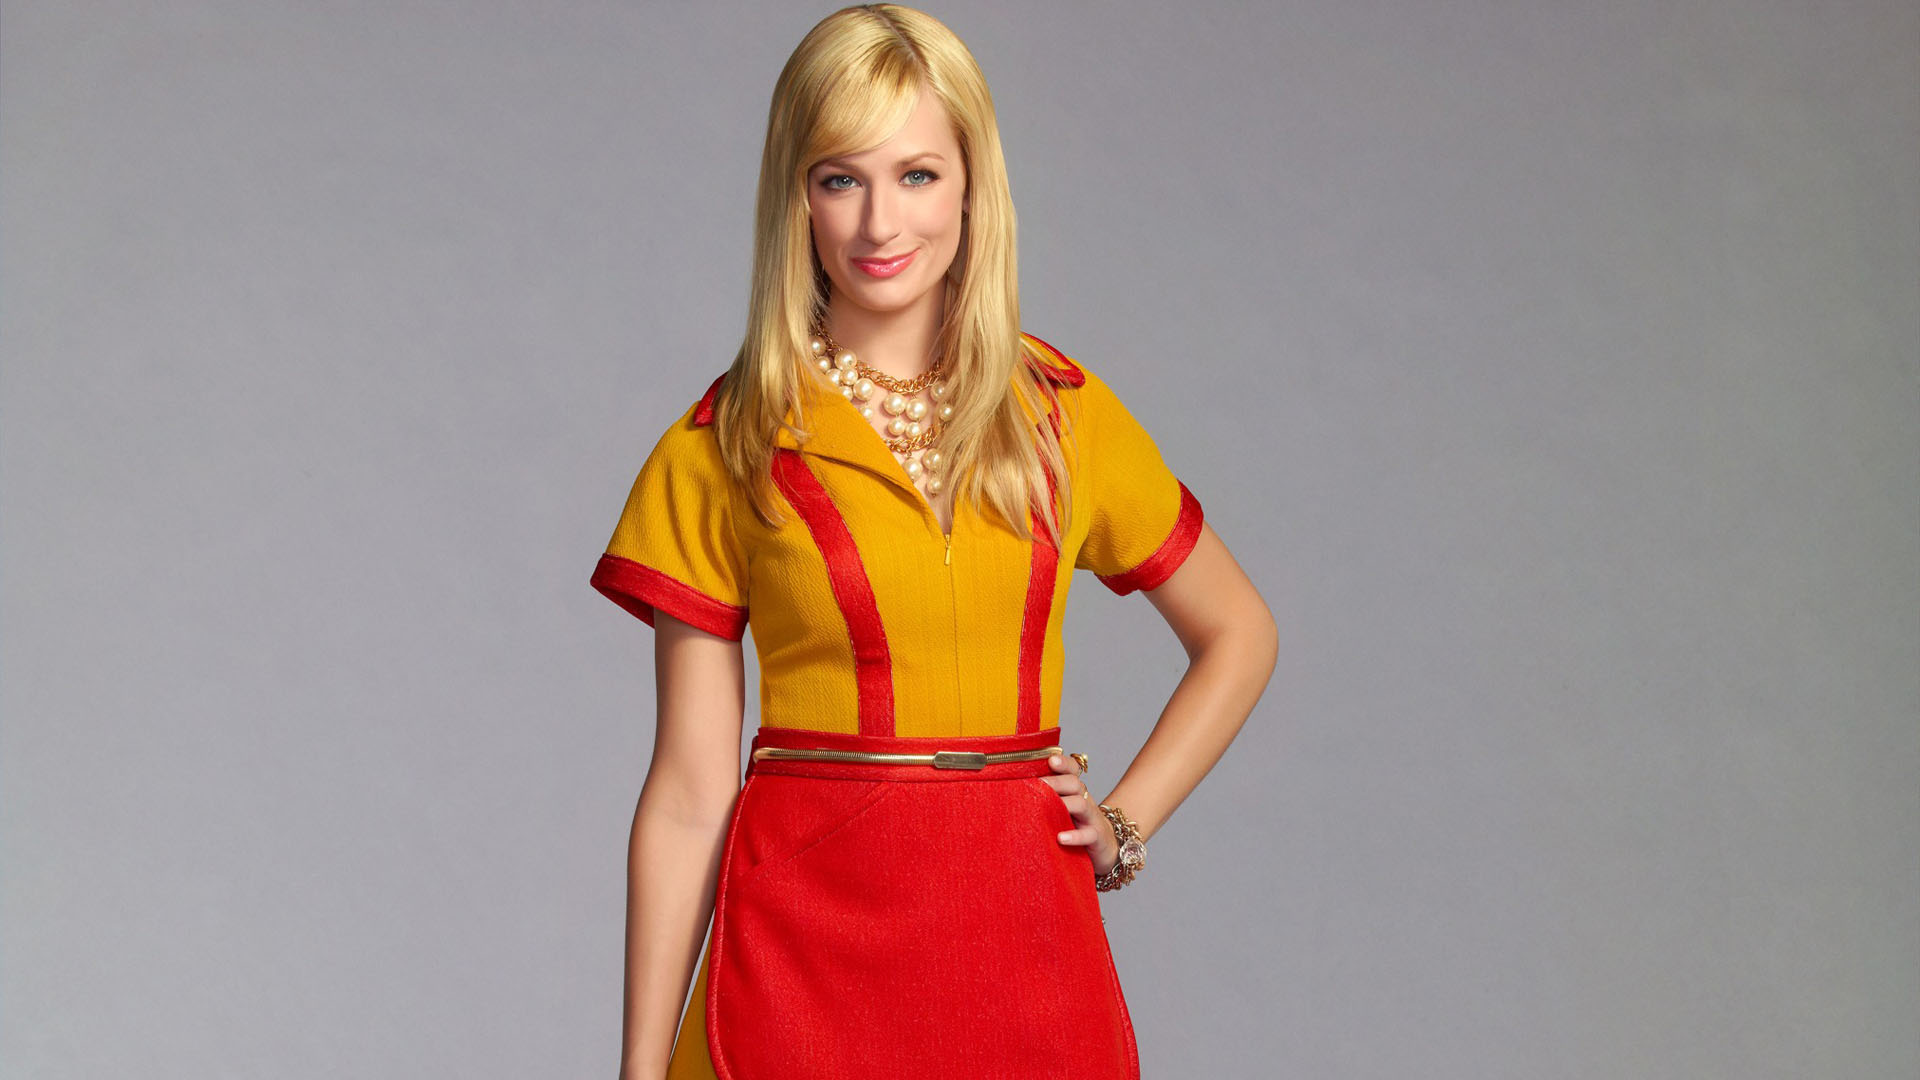 1920x1080 - Beth Behrs Wallpapers 4